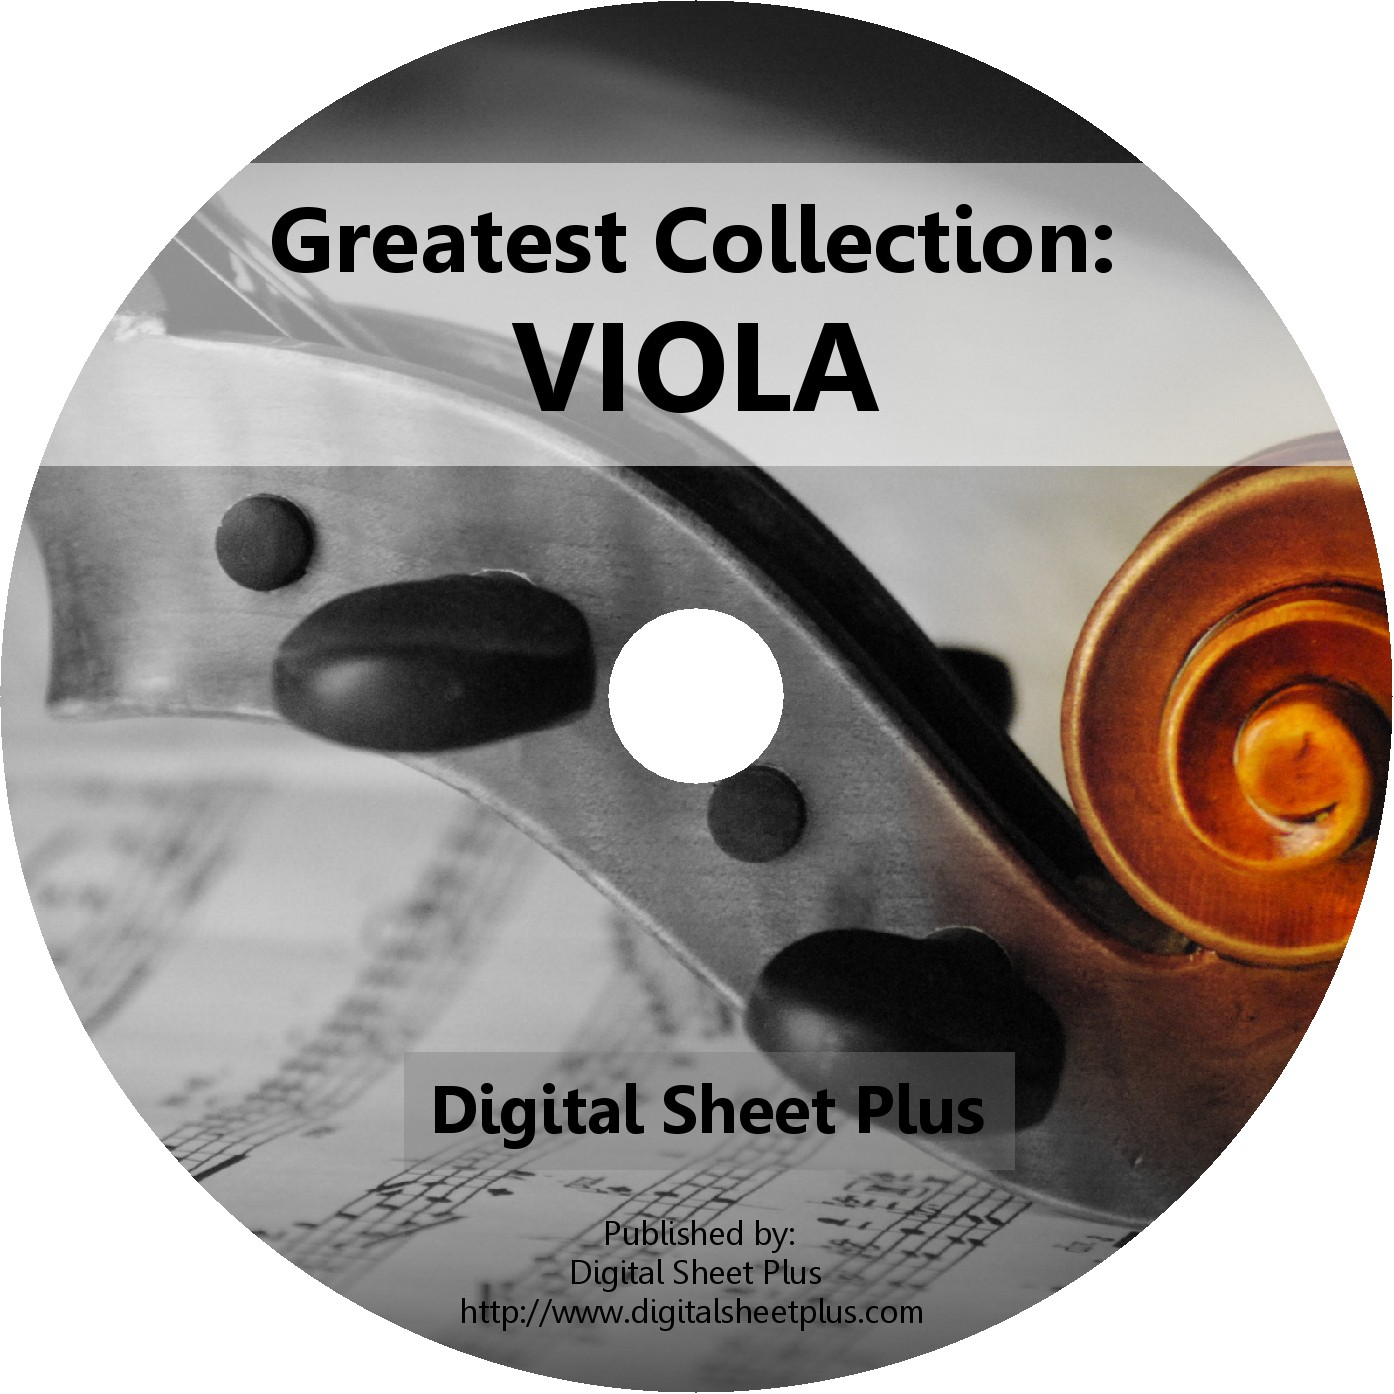 greatest_collection_VIOLA_cd_cover.jpg